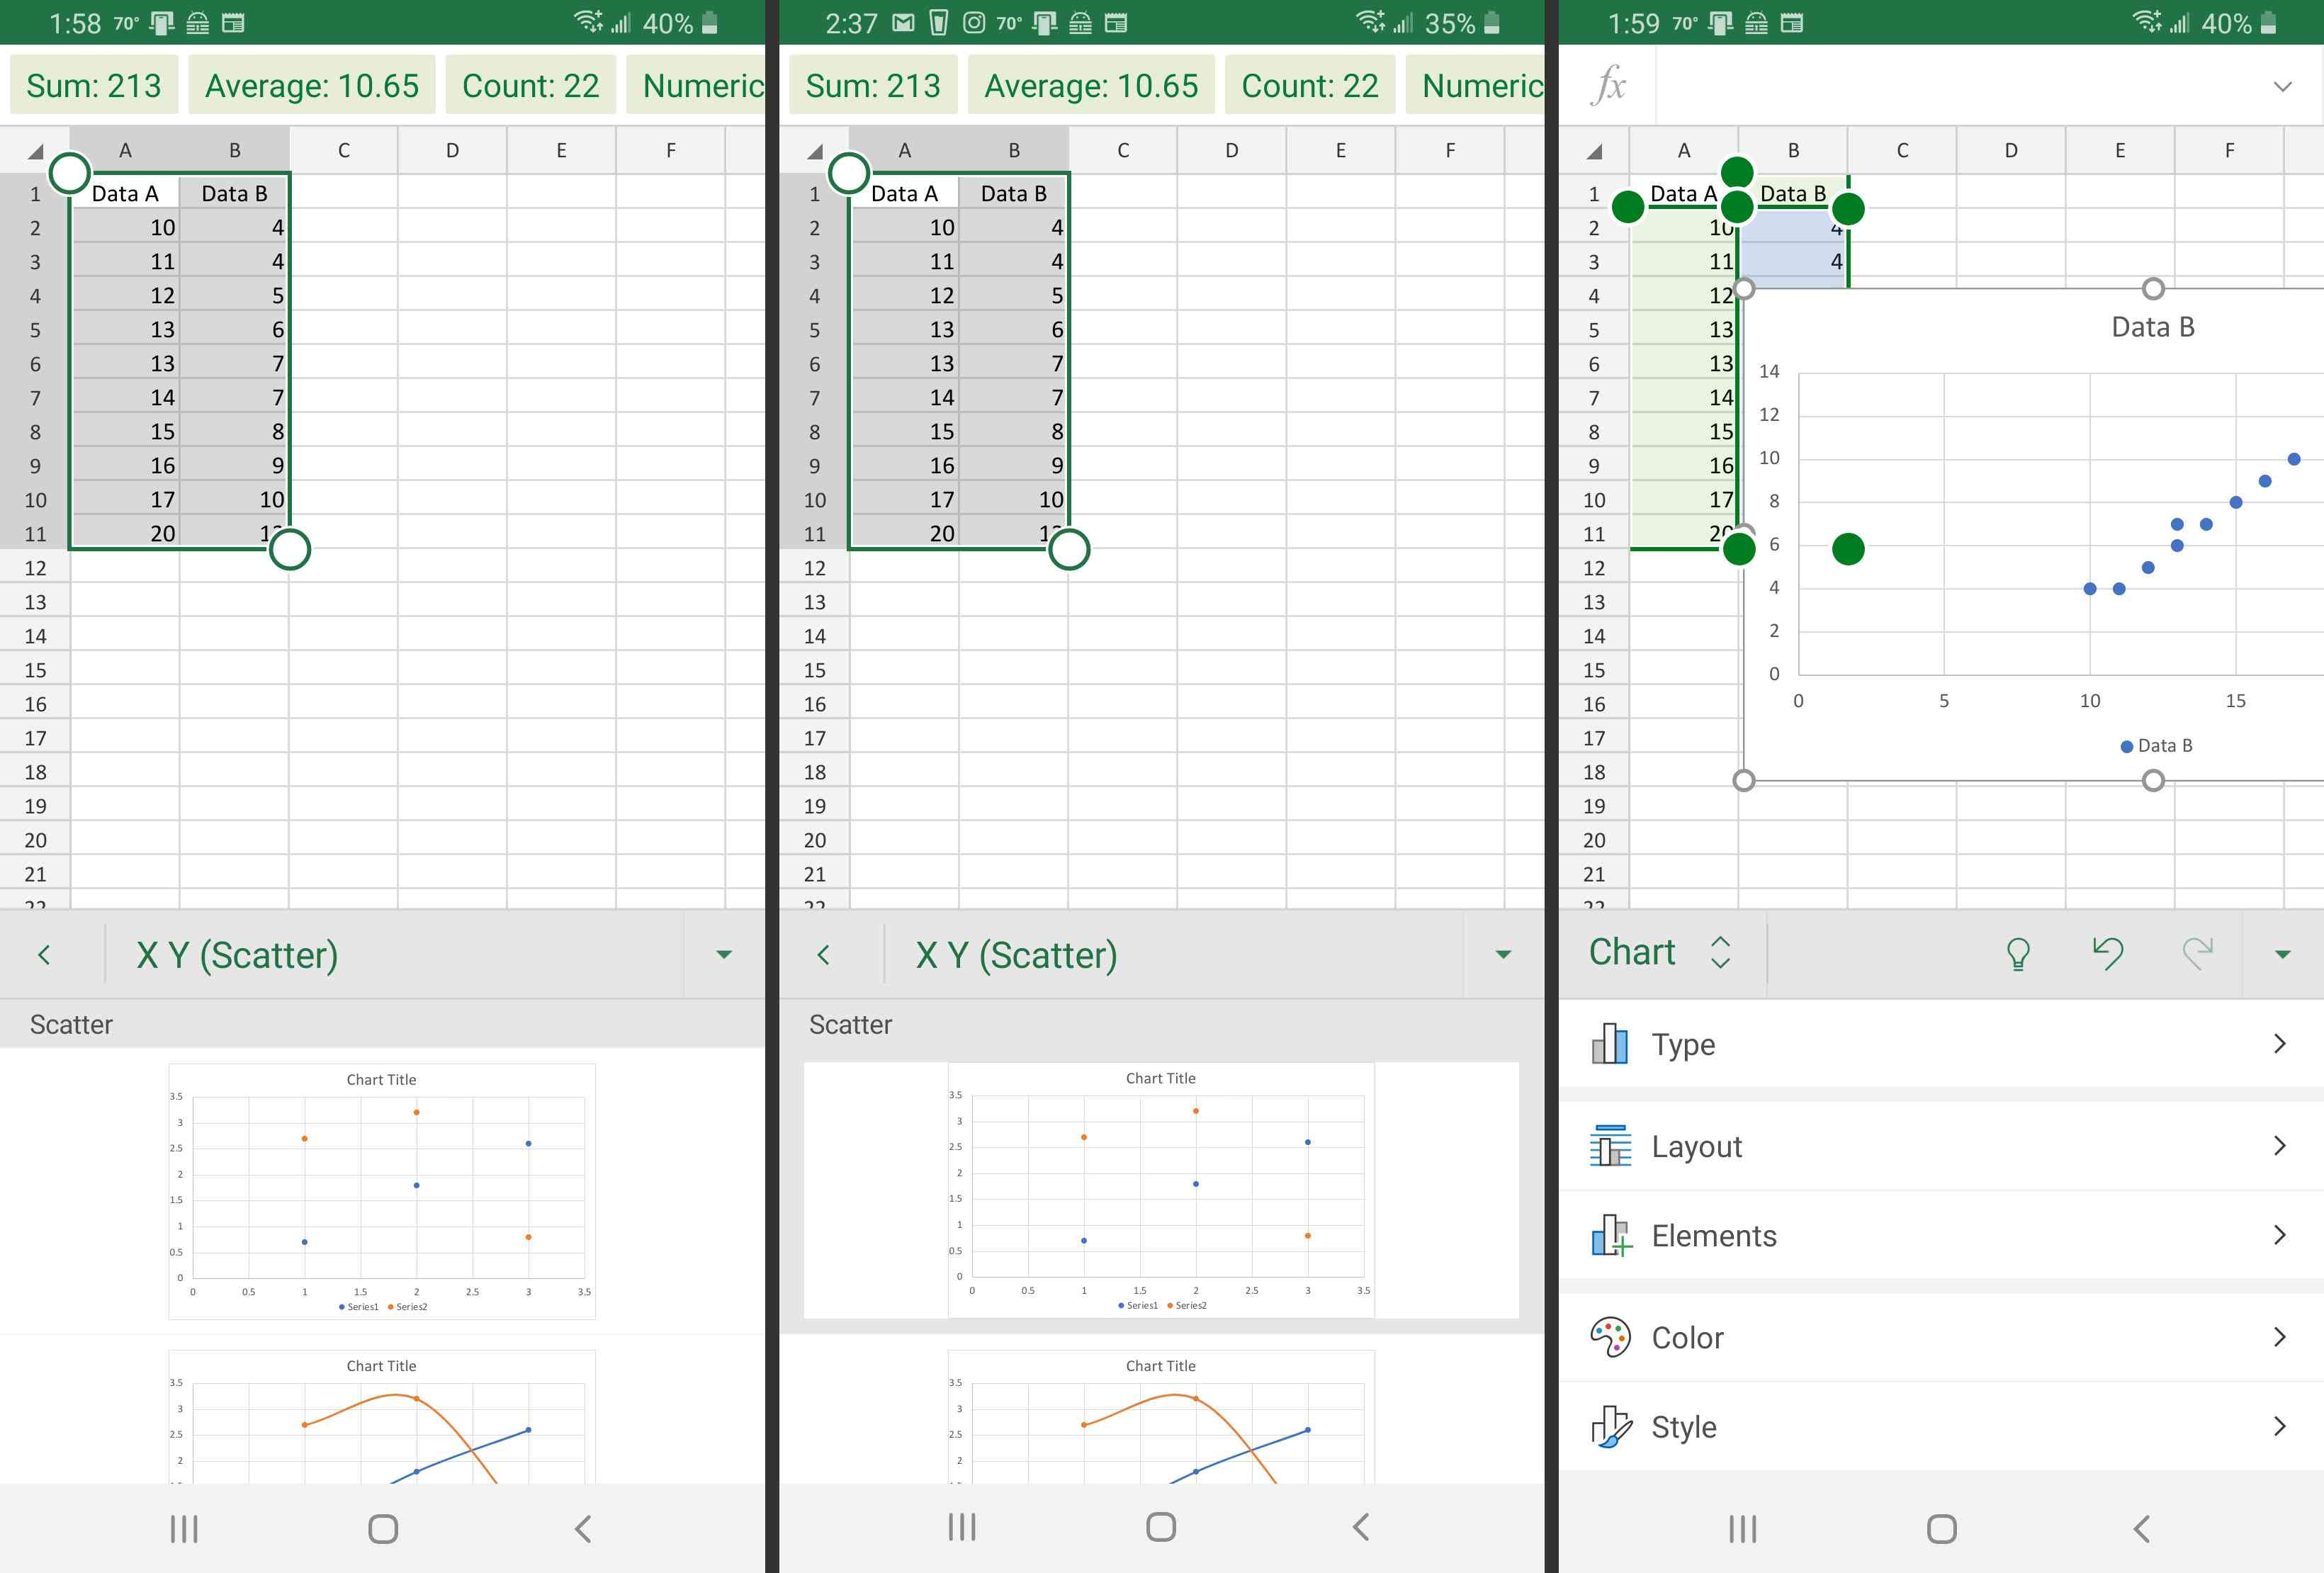 Excel on Android scatter chart type (left) and Chart details (right).